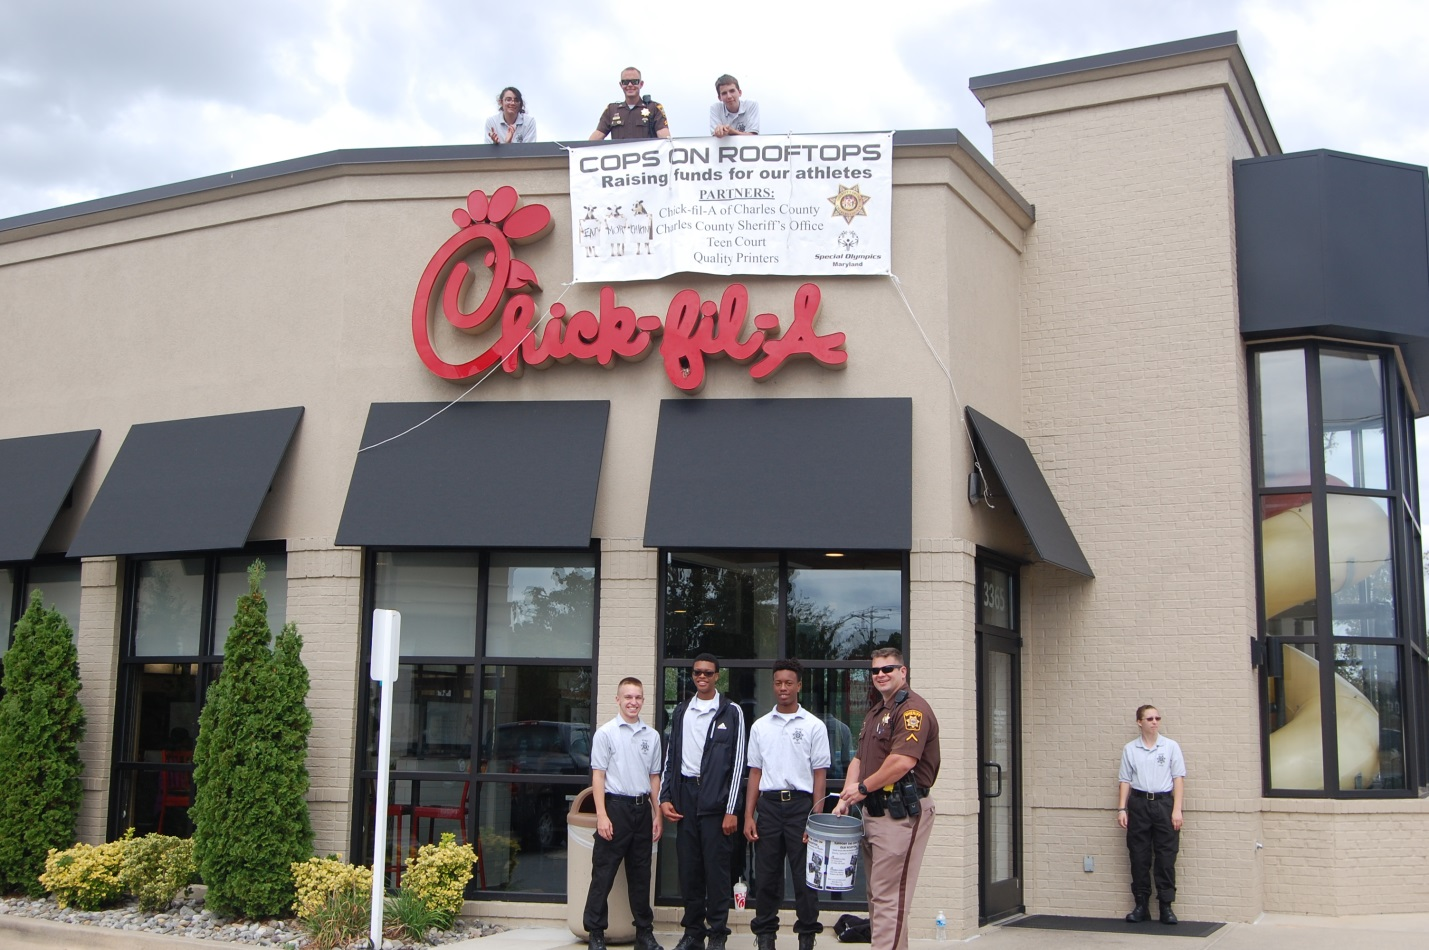 Officers and Explorers collected donations at the Waldorf and La Plata Chick-fil-A locations